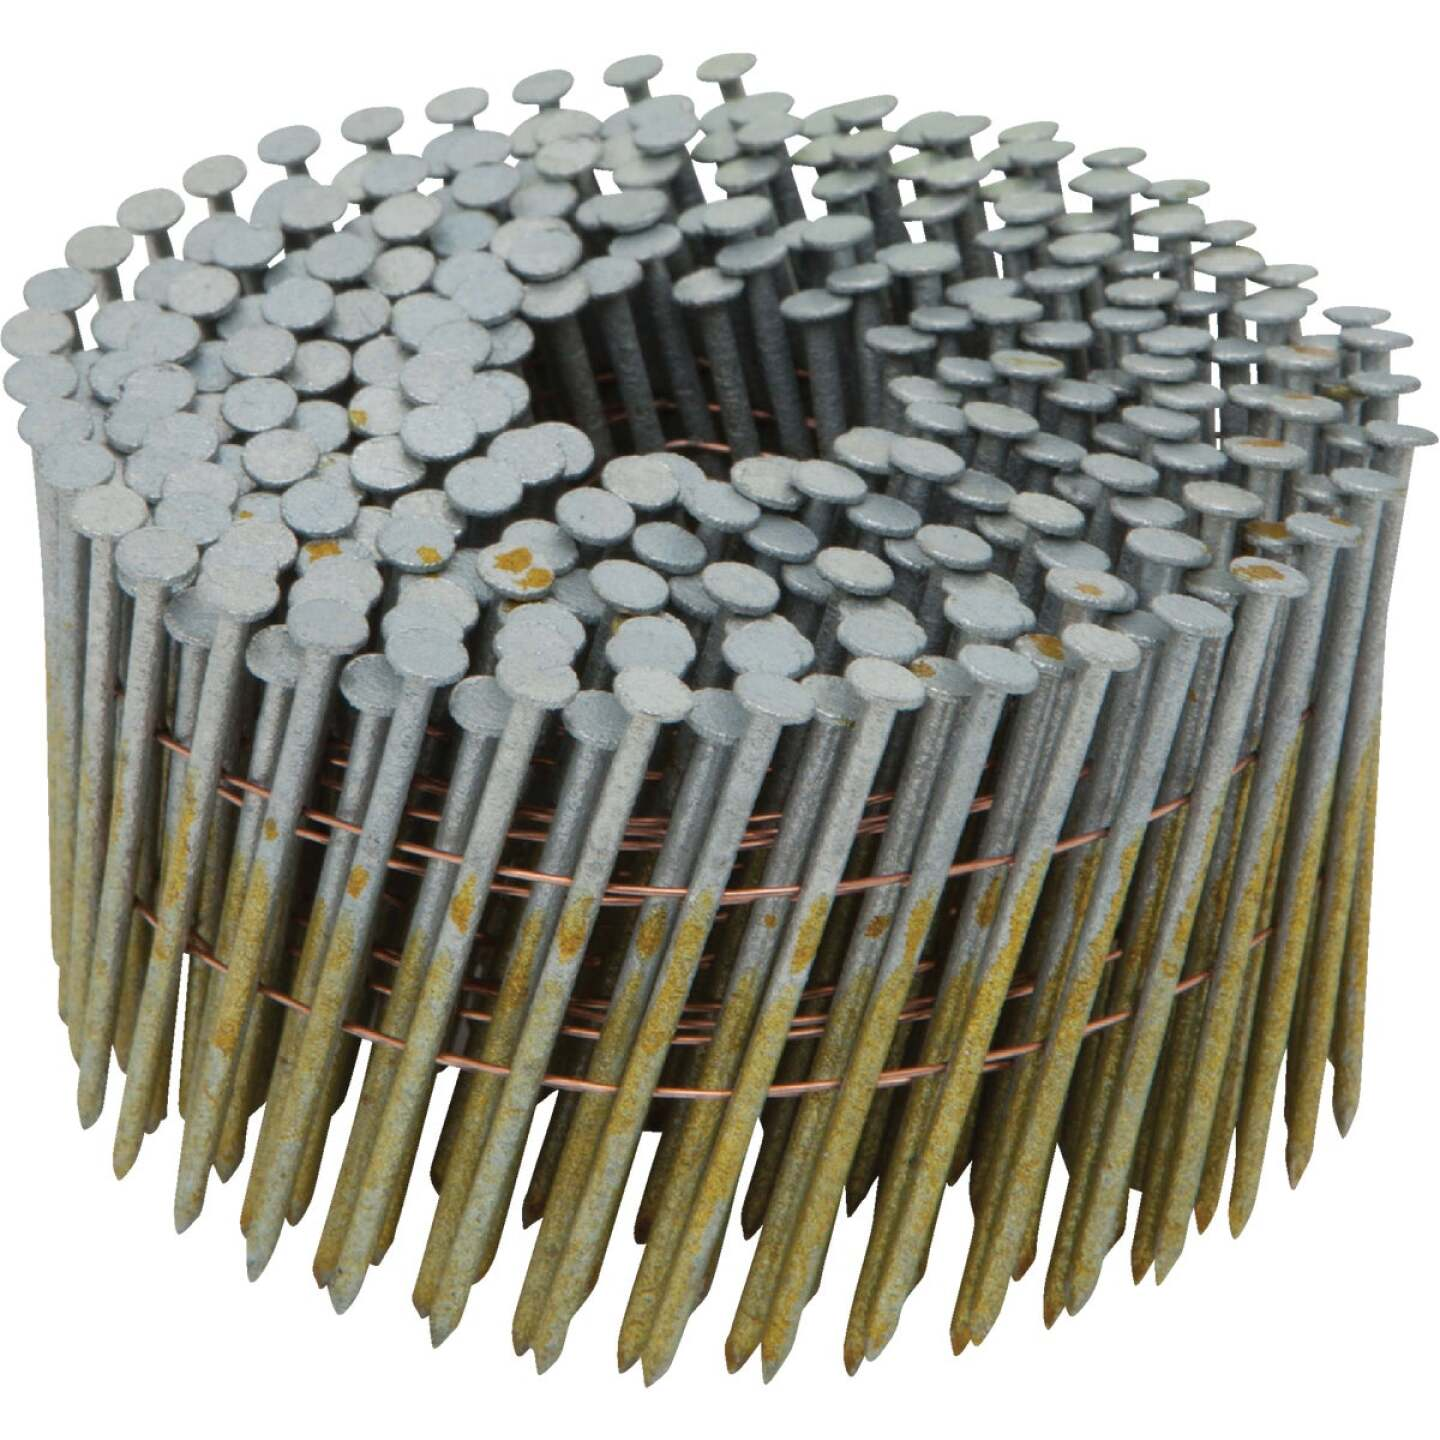 Bostitch 15 Degree Wire Weld Galvanized Coil Framing Nail, 2-1/2 In. x .099 In. (3600 Ct.) Image 1